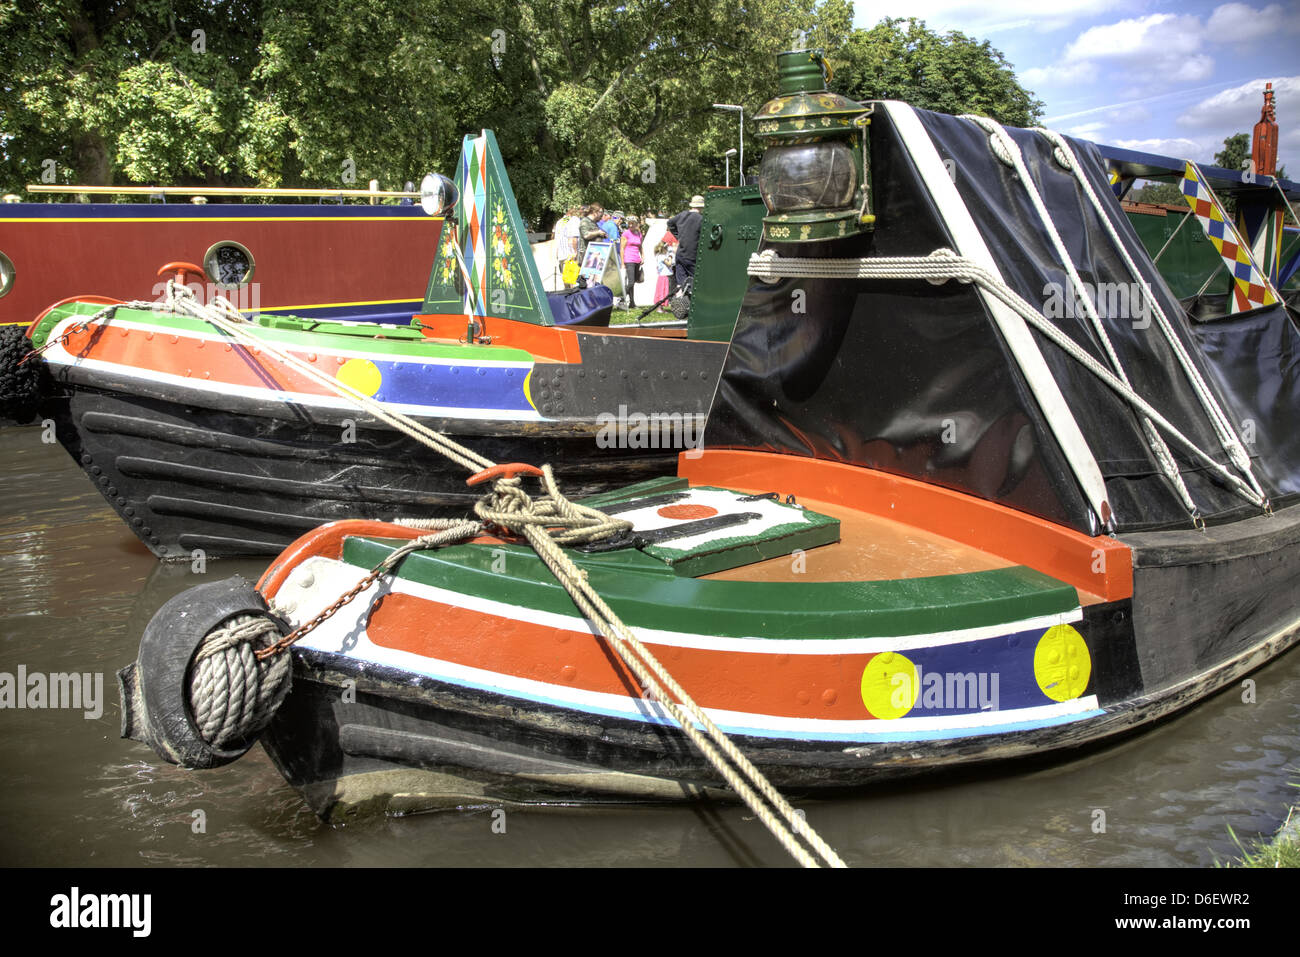 Pair of working traditional narrowboats at the IWA National Rally, Shardlow, Trent and Mersey Canal, England - Stock Image